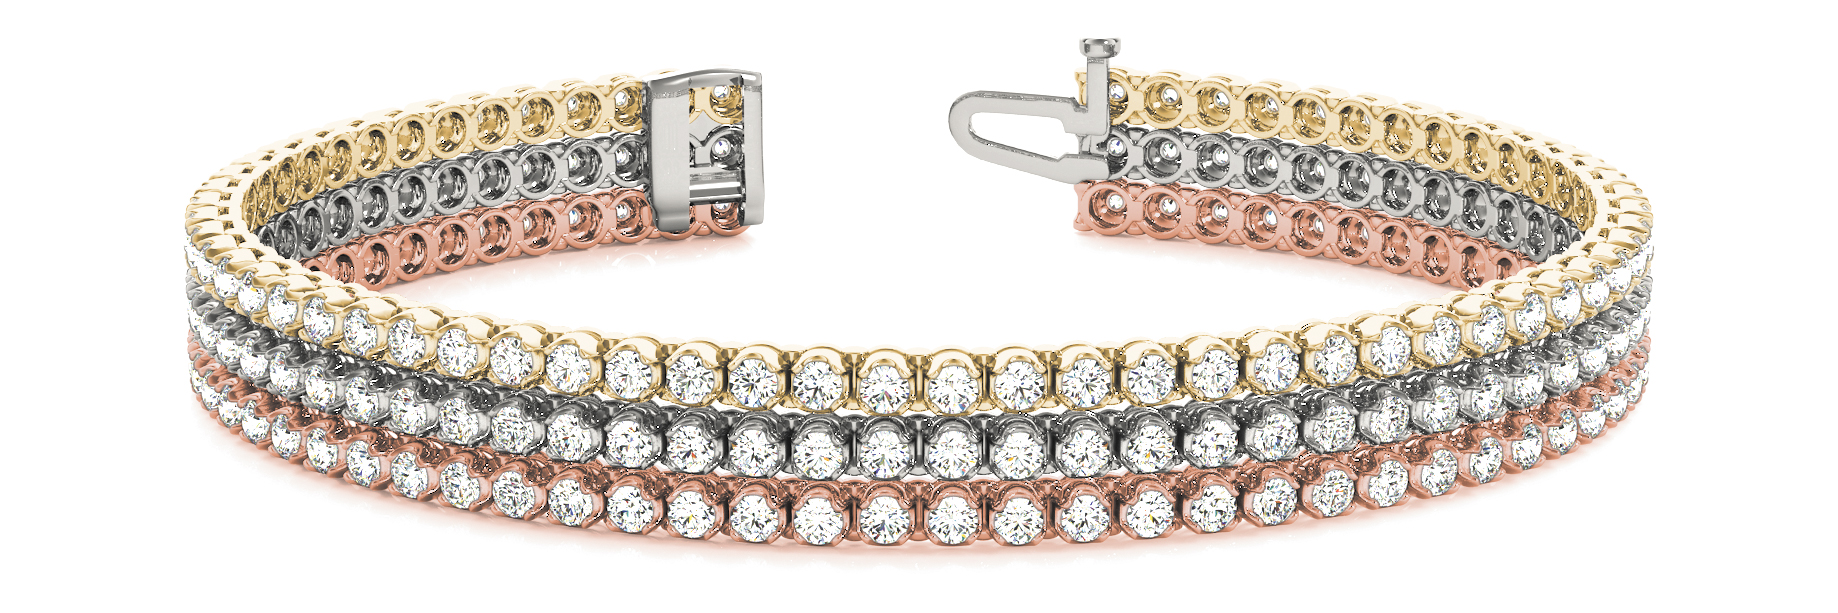 Multi Row Round Diamond Tri Colored Bracelet 3.7 Ct.